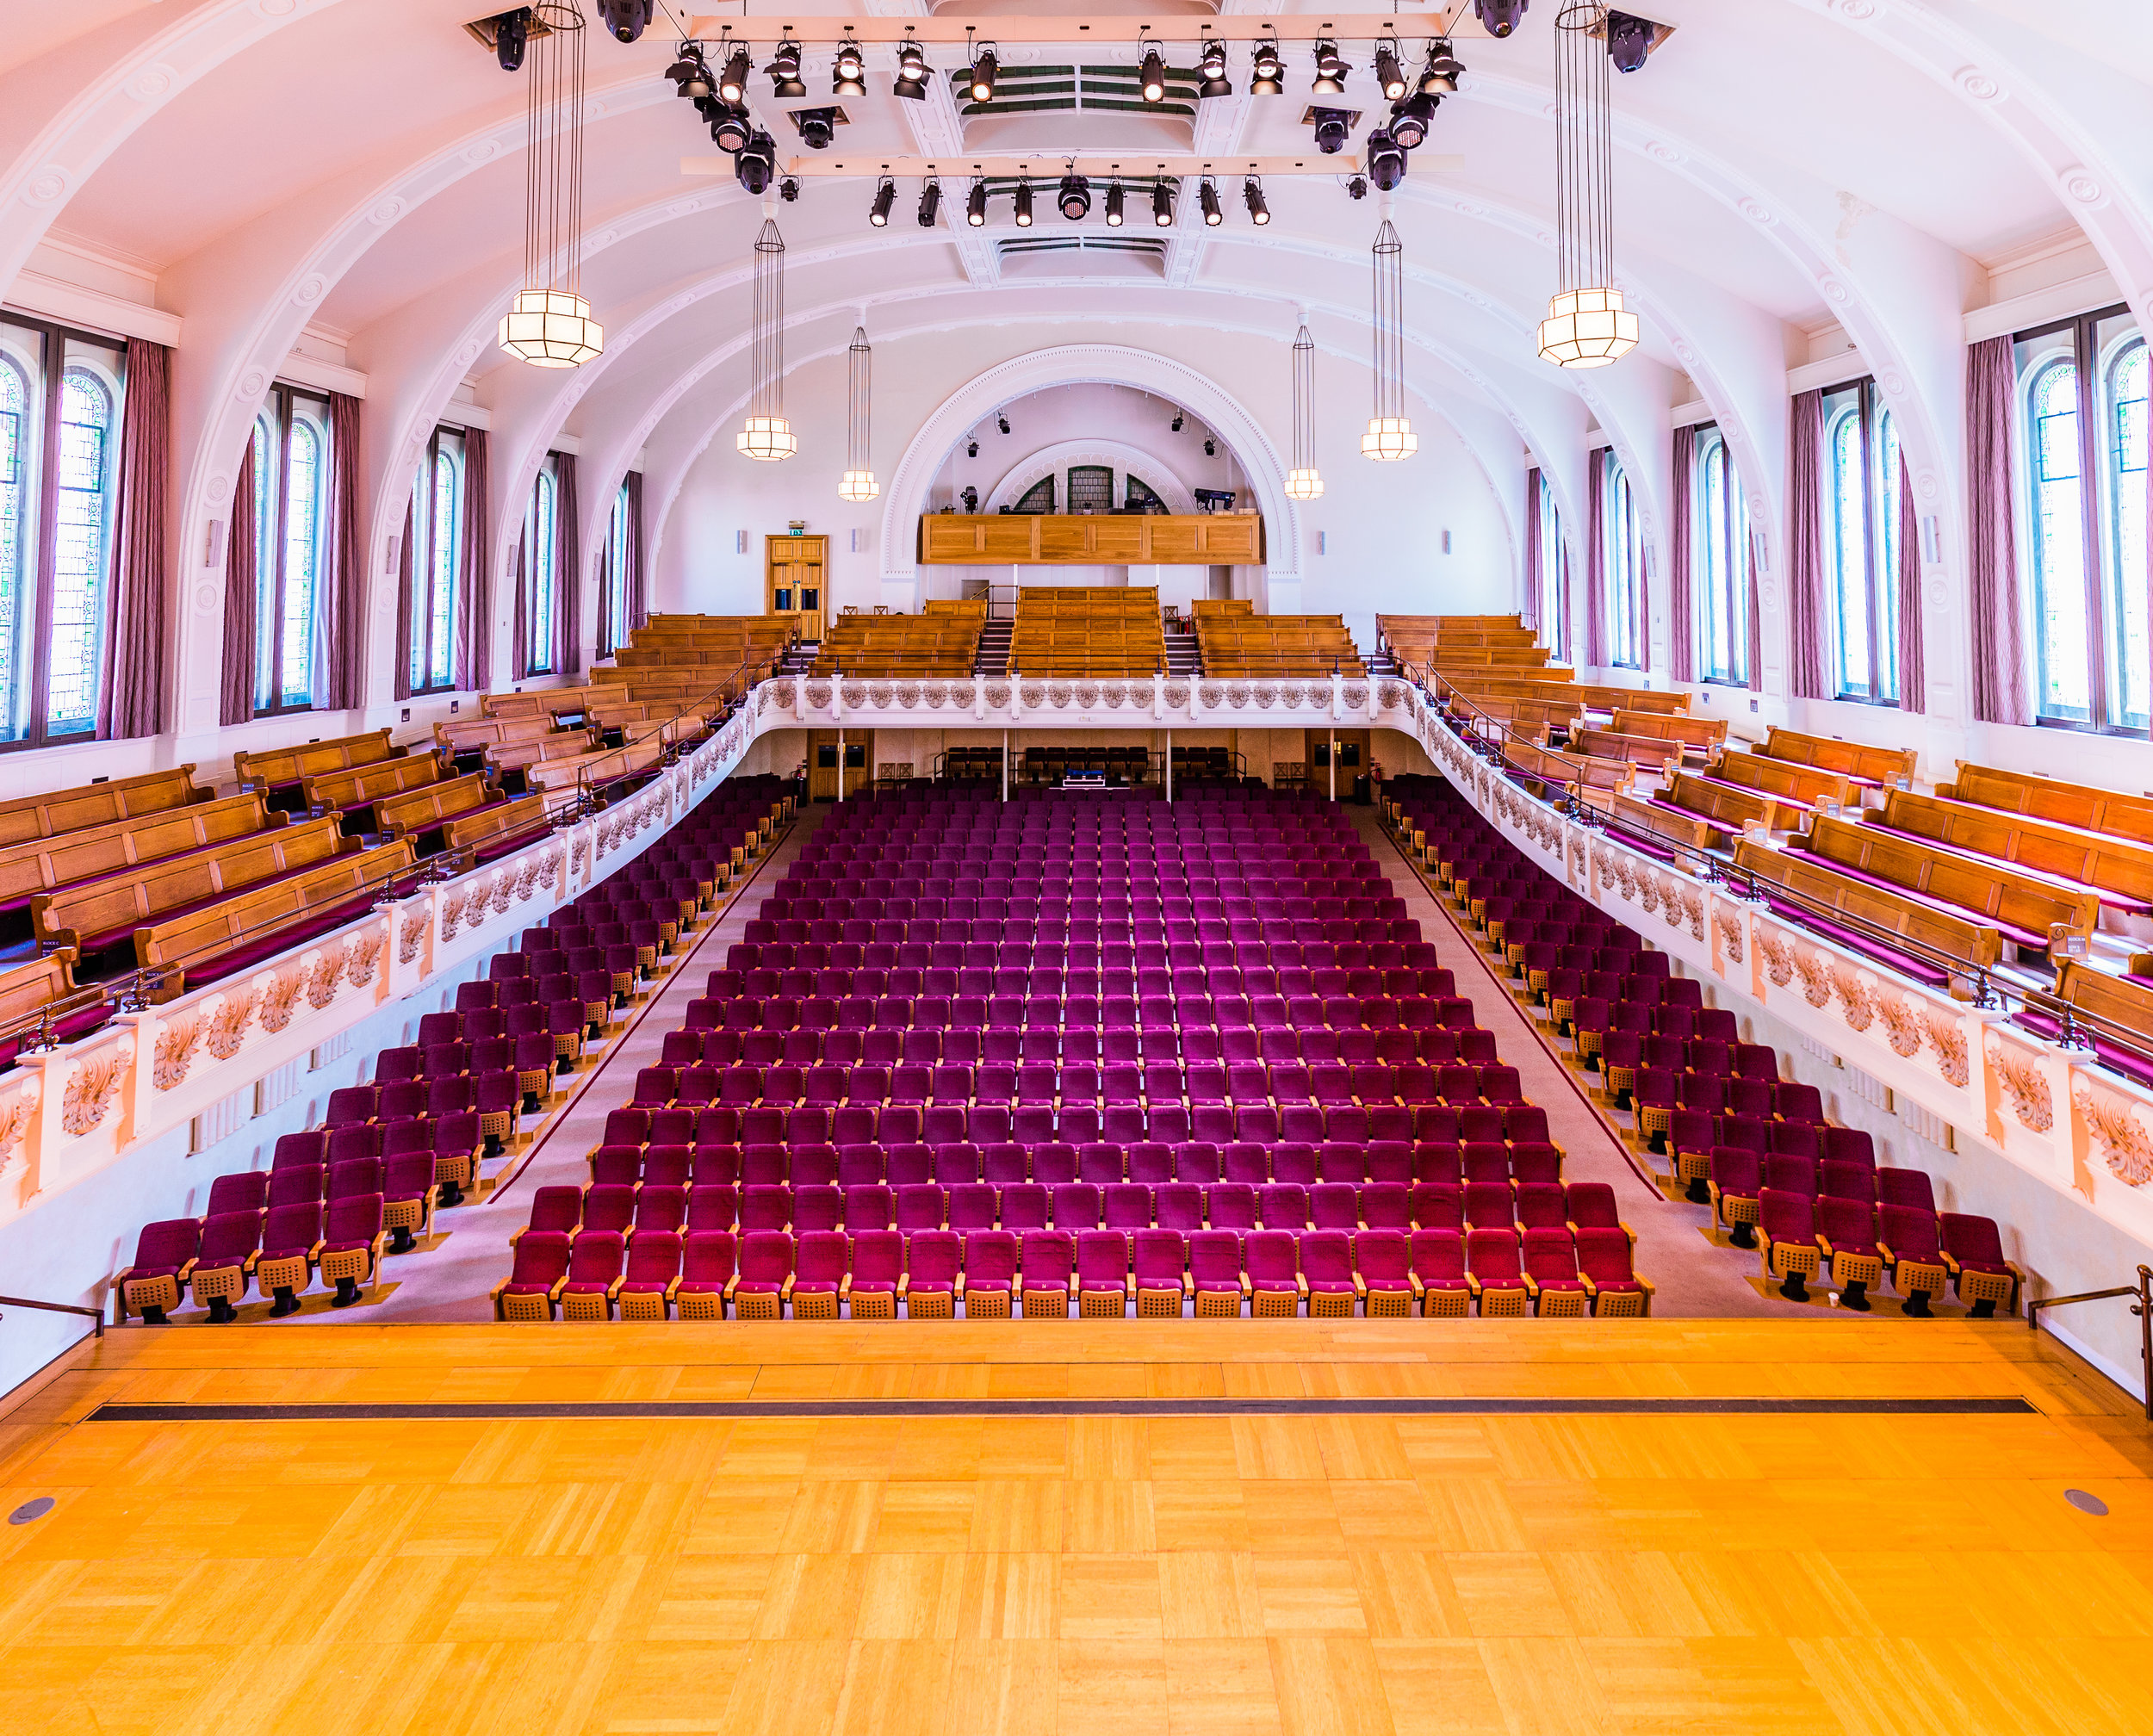 cadogan-hall-auditorium_24688938258_o.jpg